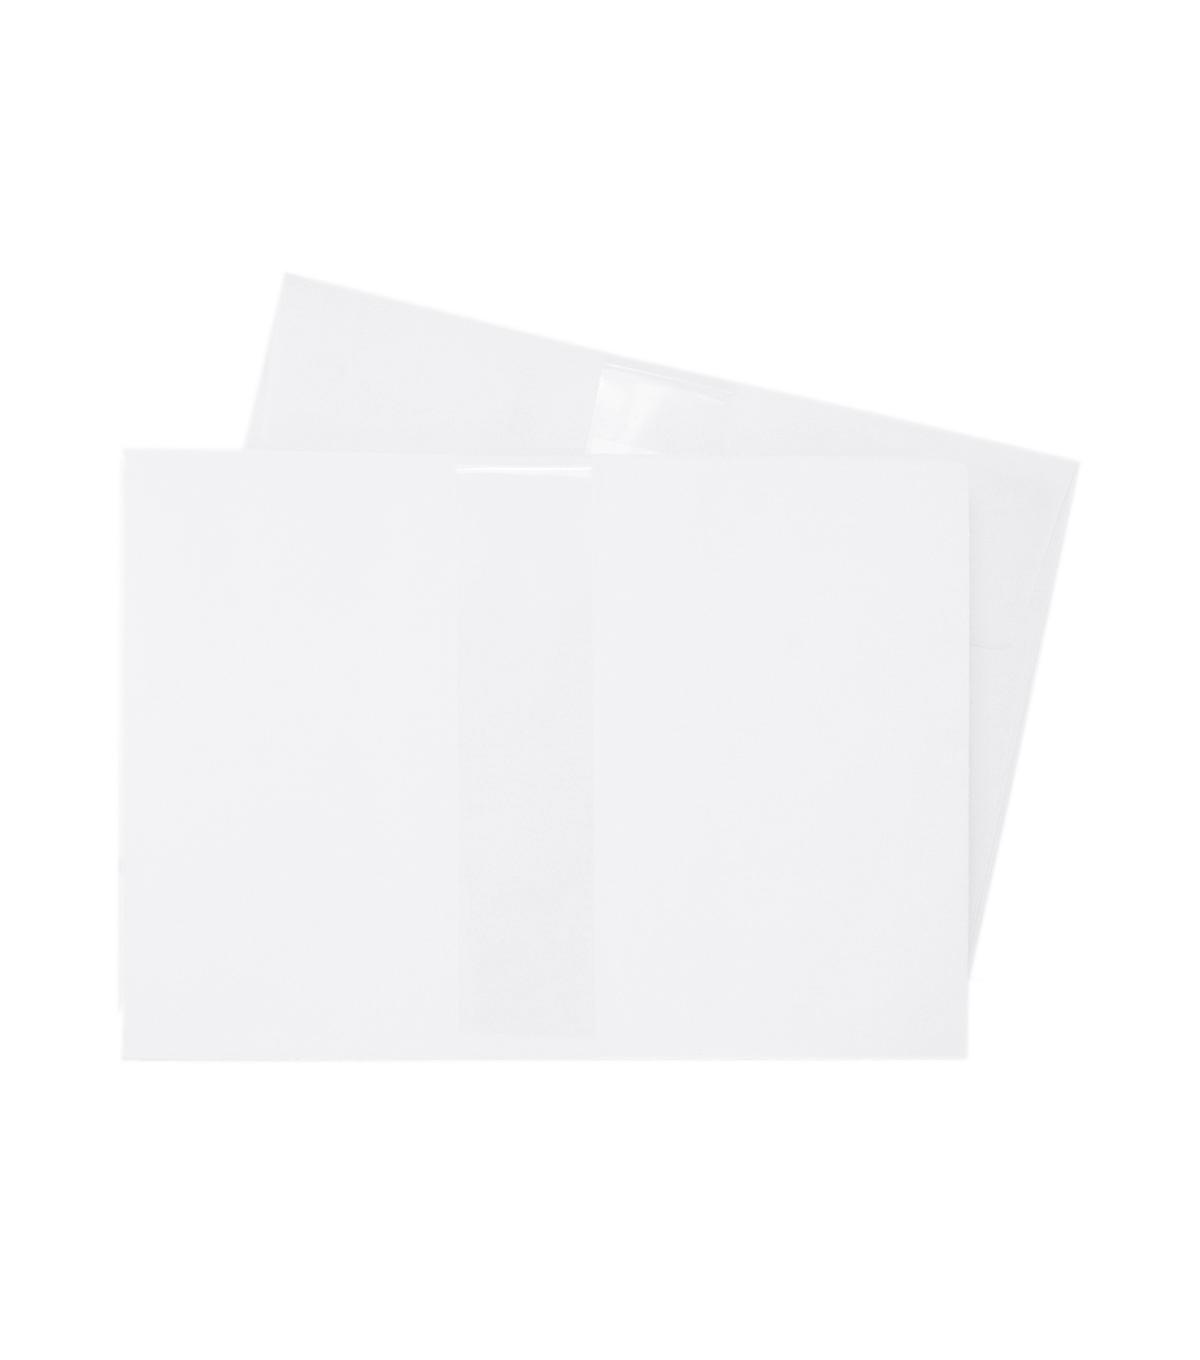 Park Lane 50 pk A7 Envelopes-White